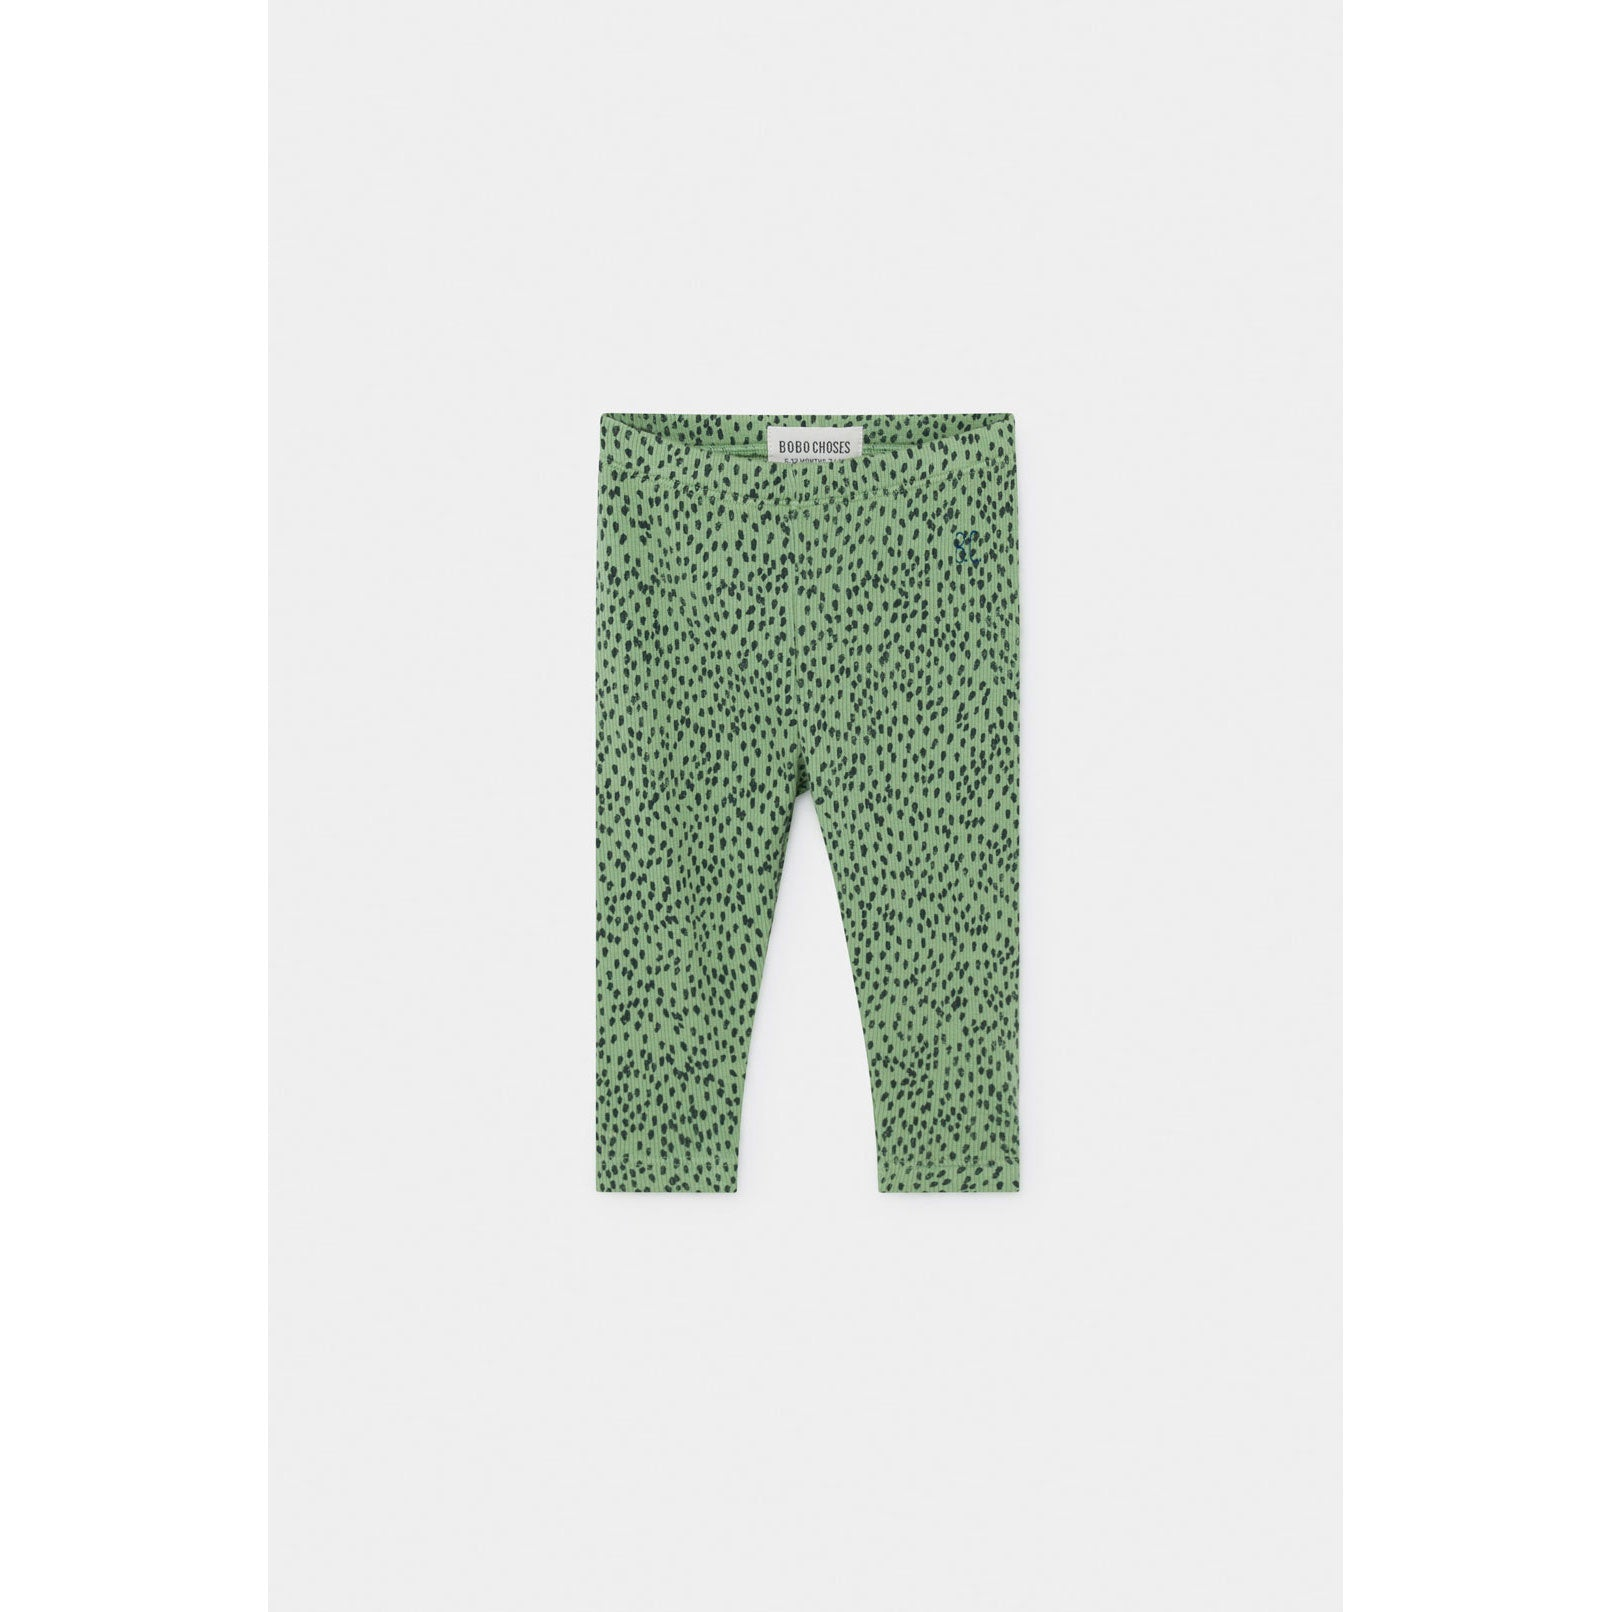 Bobo Choses Green Leopard Baby Leggings